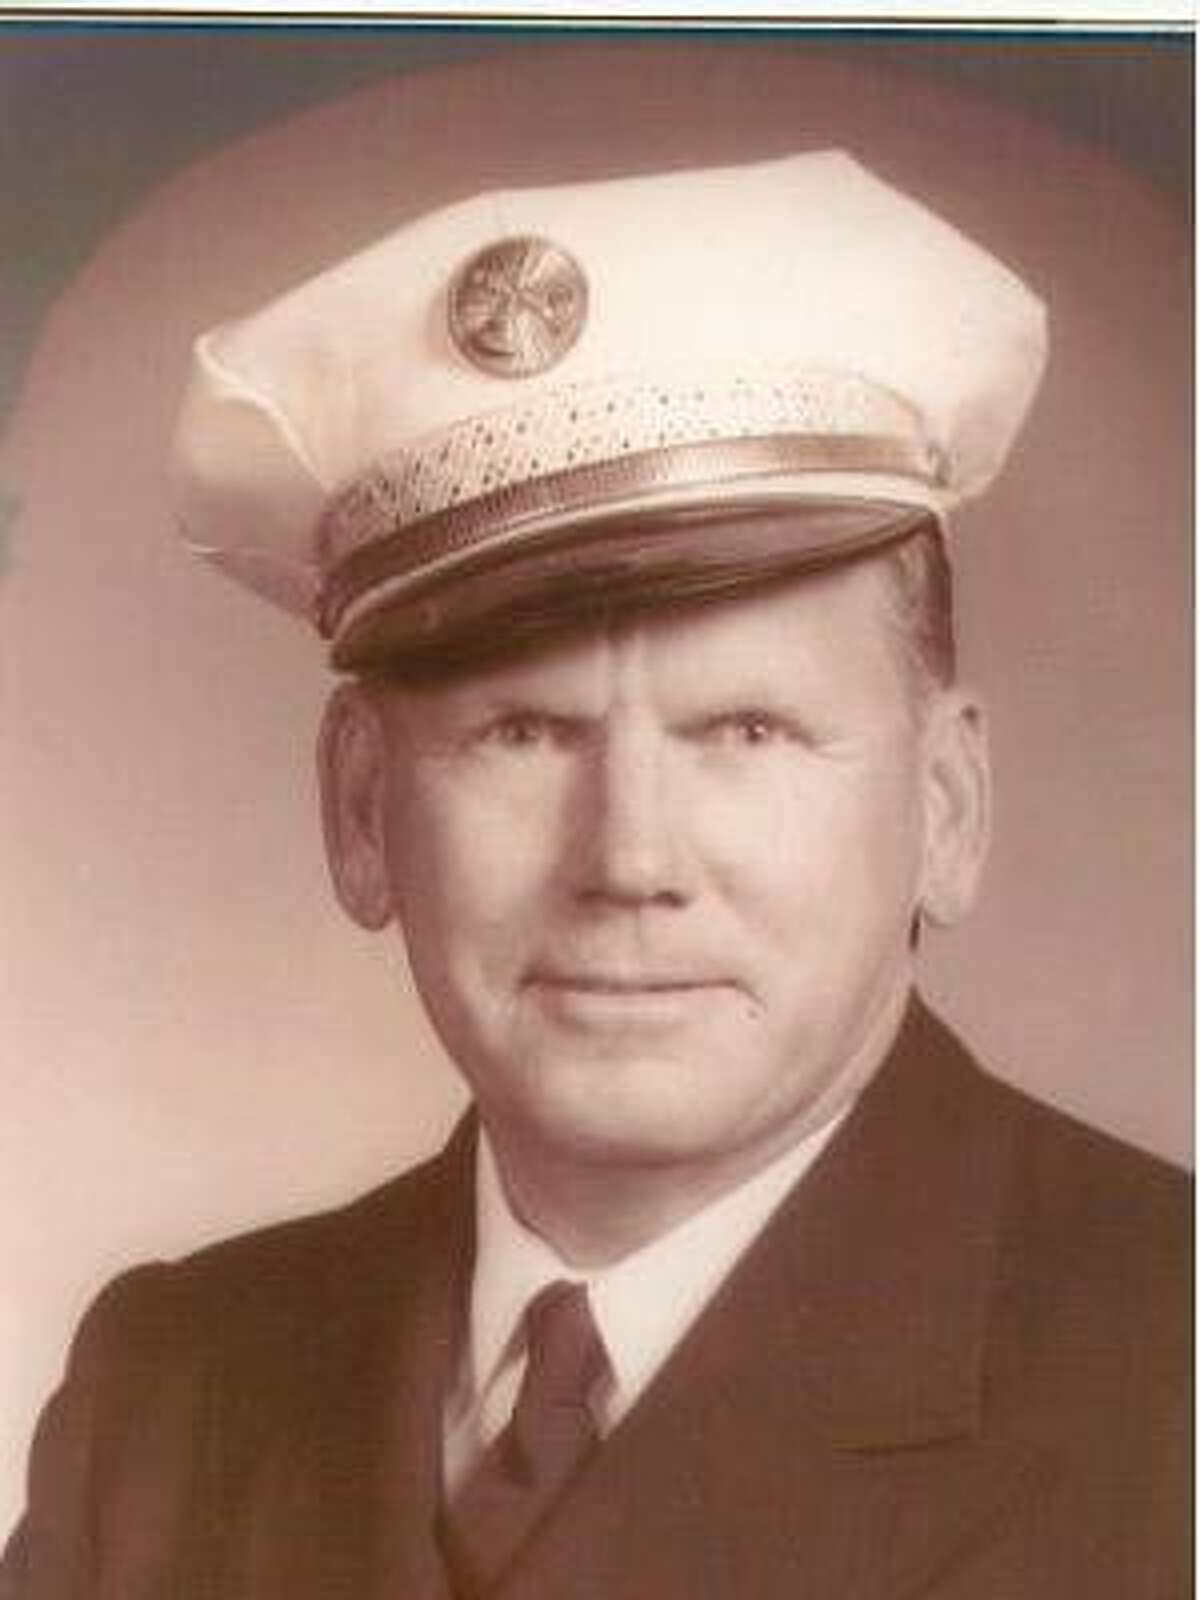 Chief Val Jahnke, HFD's Val Jahnke Training Facility is named after him.